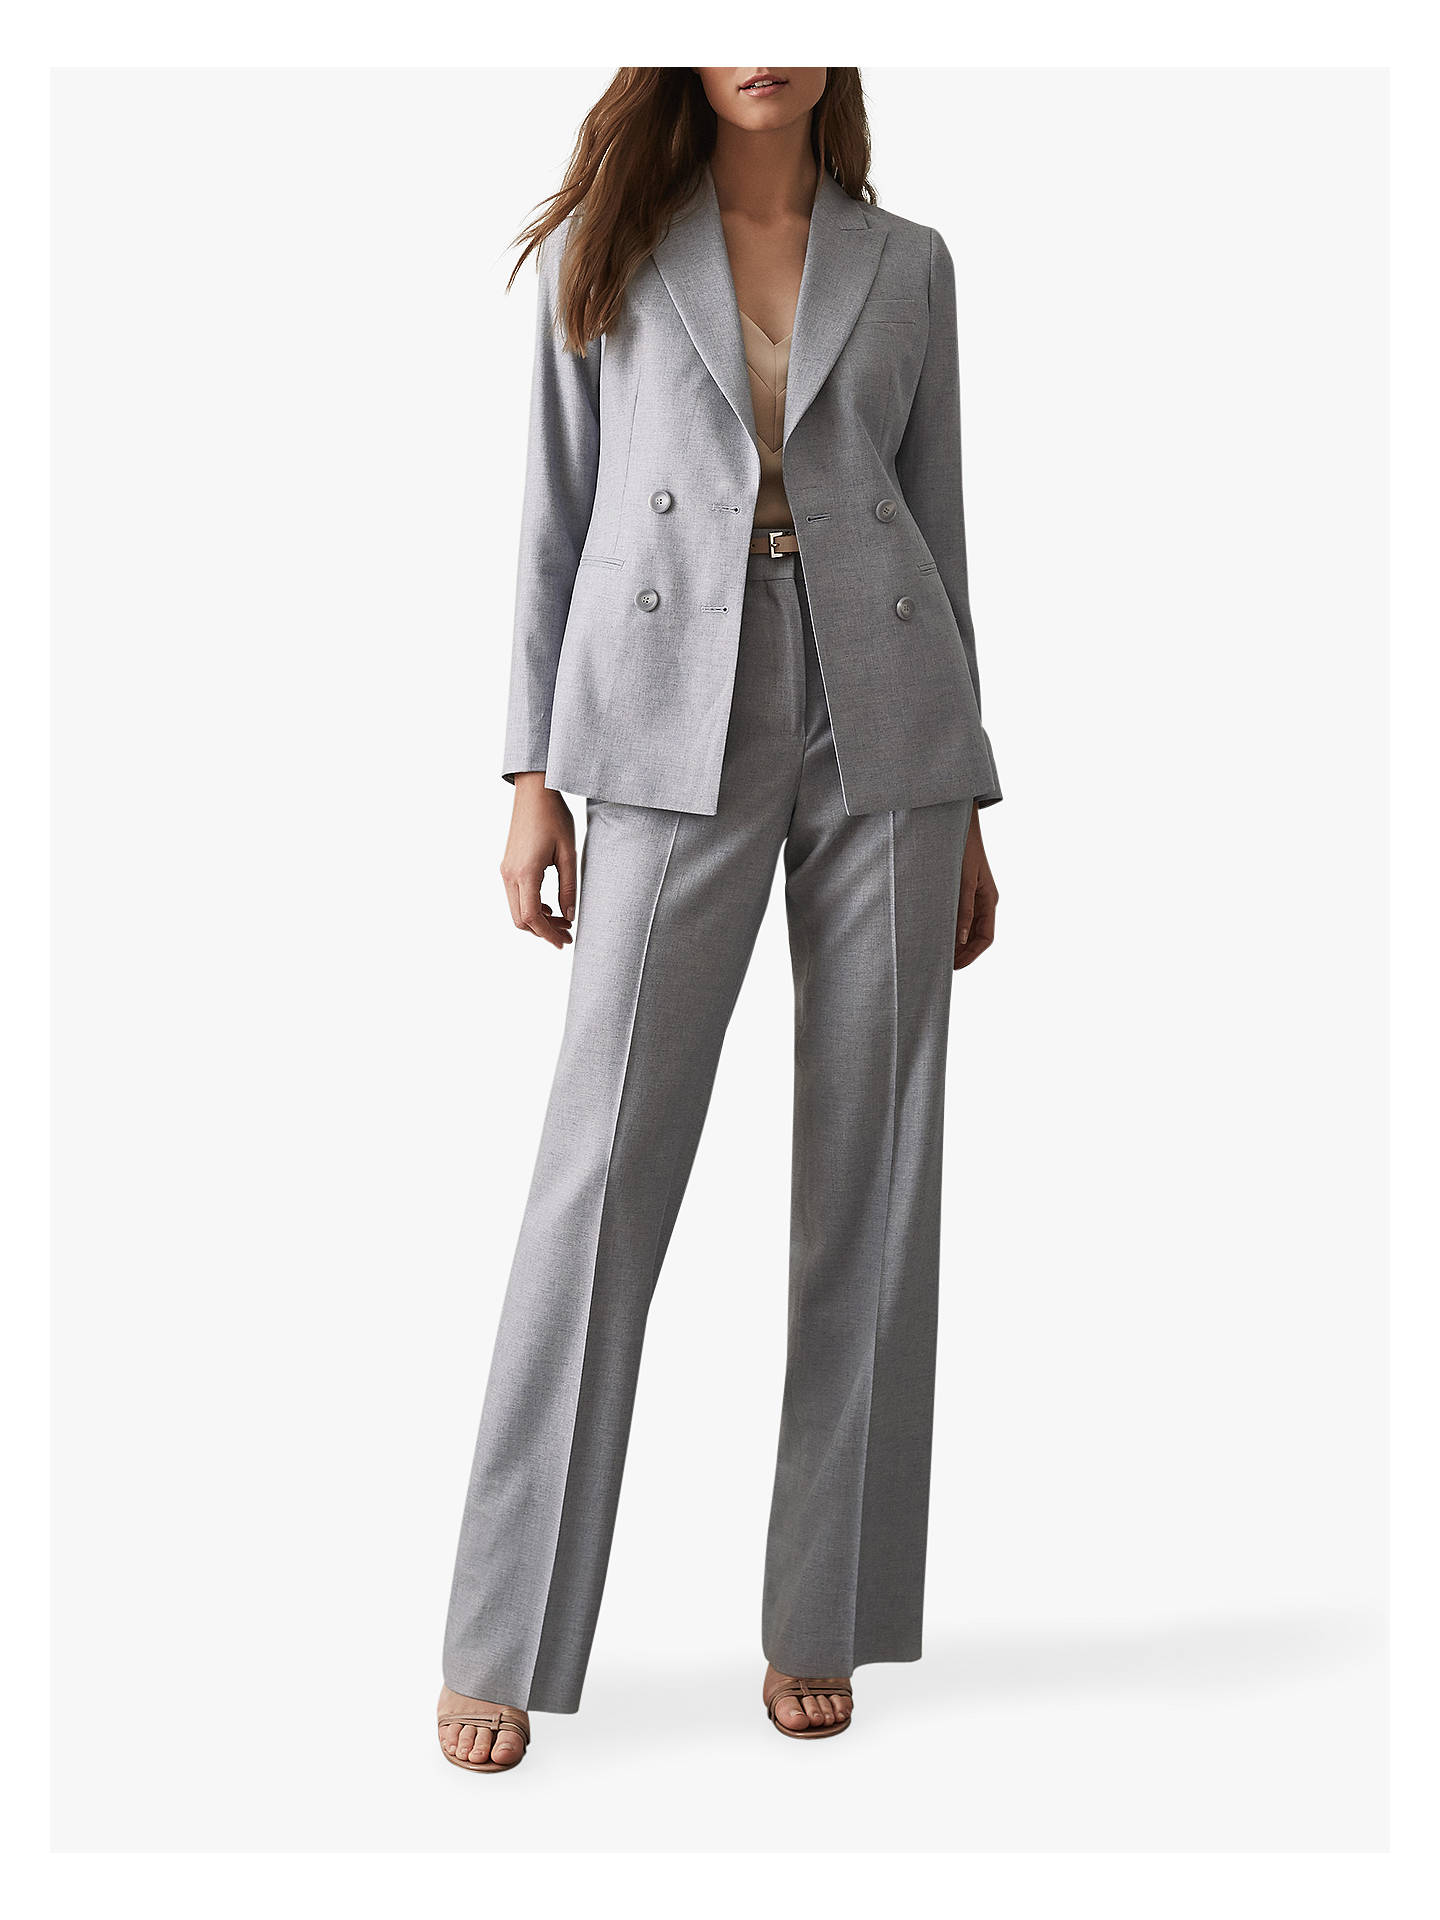 BuyReiss Essie Wide Leg Tailored Trousers, Light Blue, 6 Online at johnlewis.com